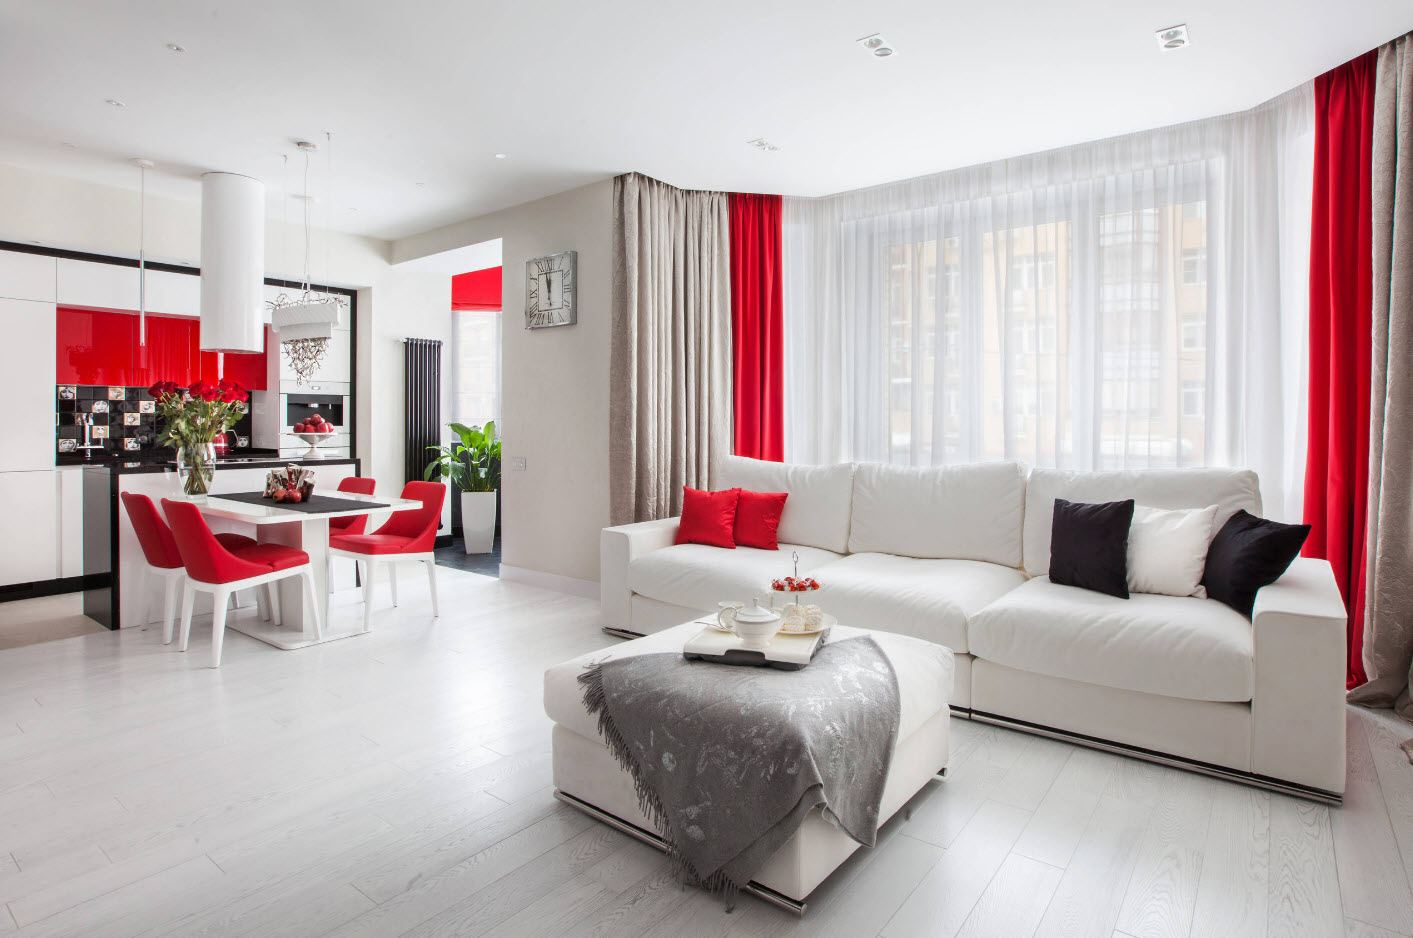 White Living Room: Different Style Interiors with Photos. Red additions to the nicely decorated open area apartment